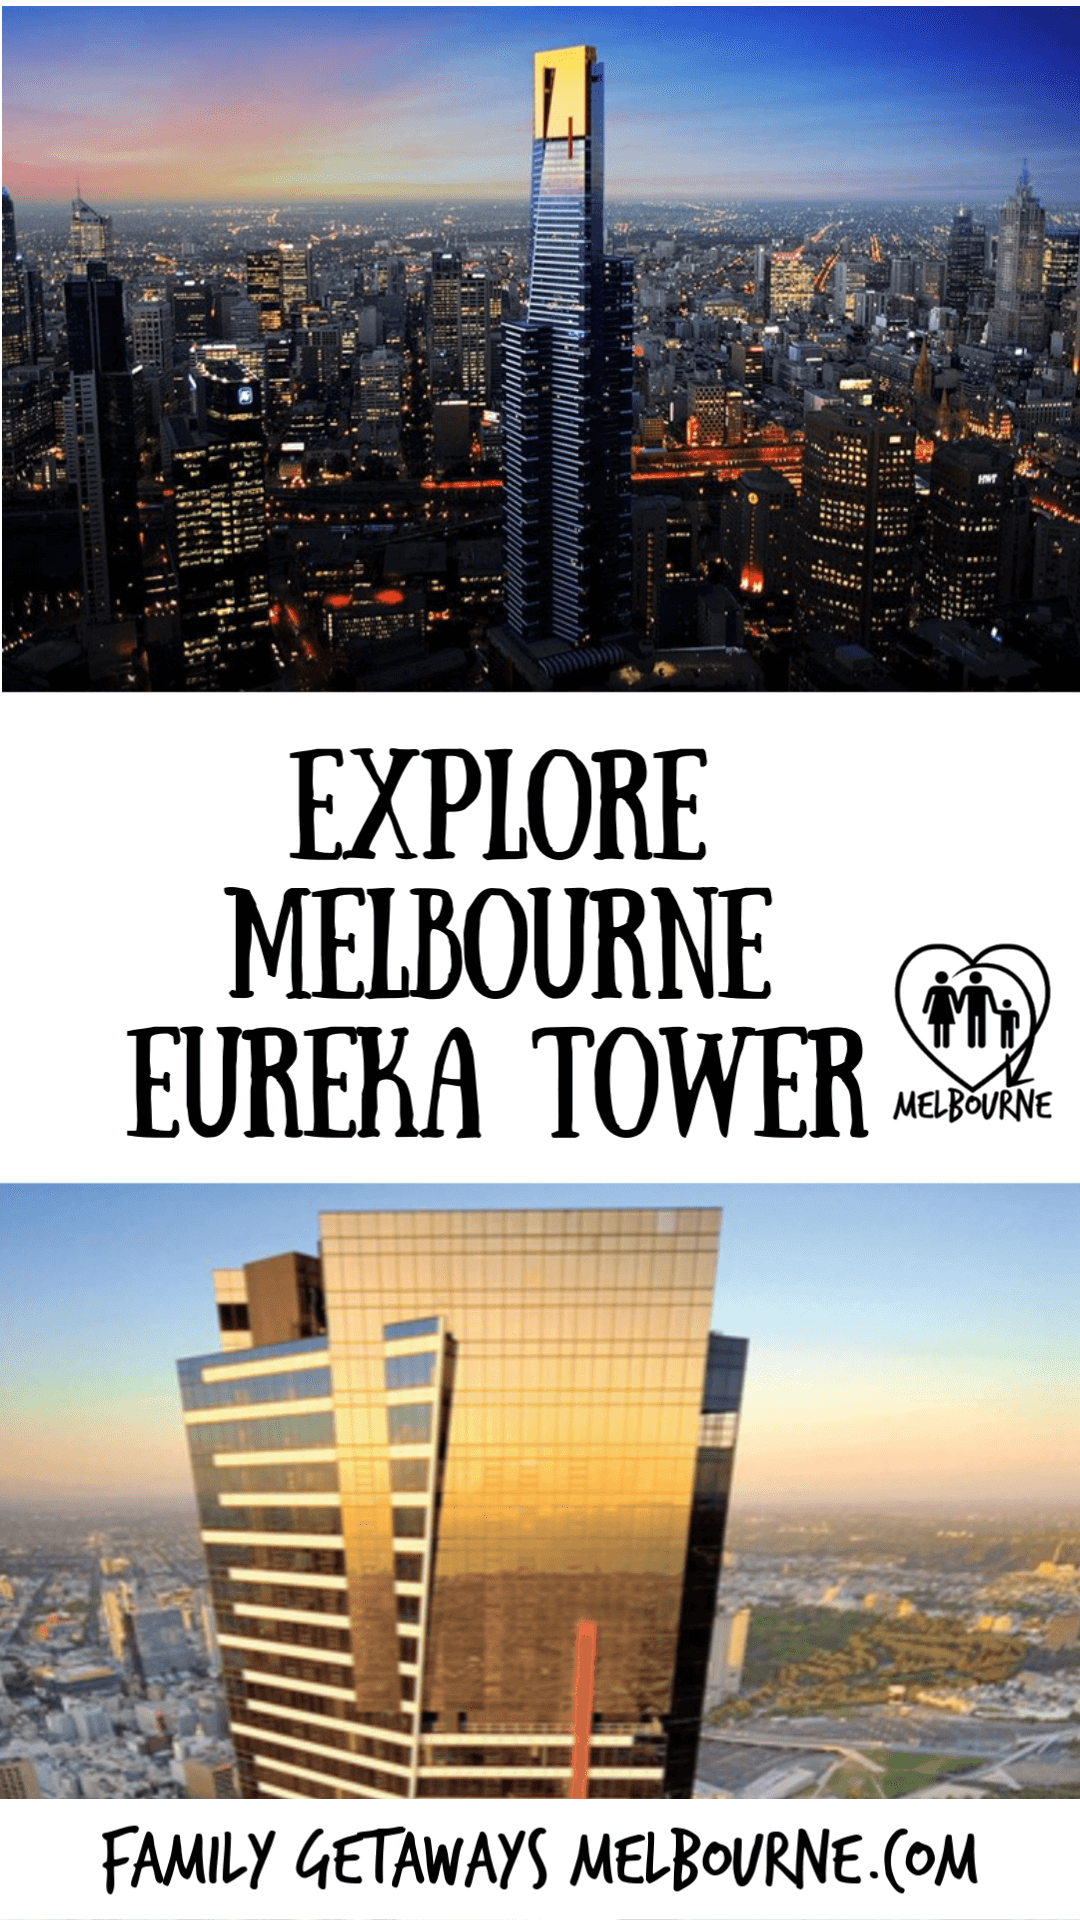 image to pin to pinterest for the Eureka Tower in Melbourne